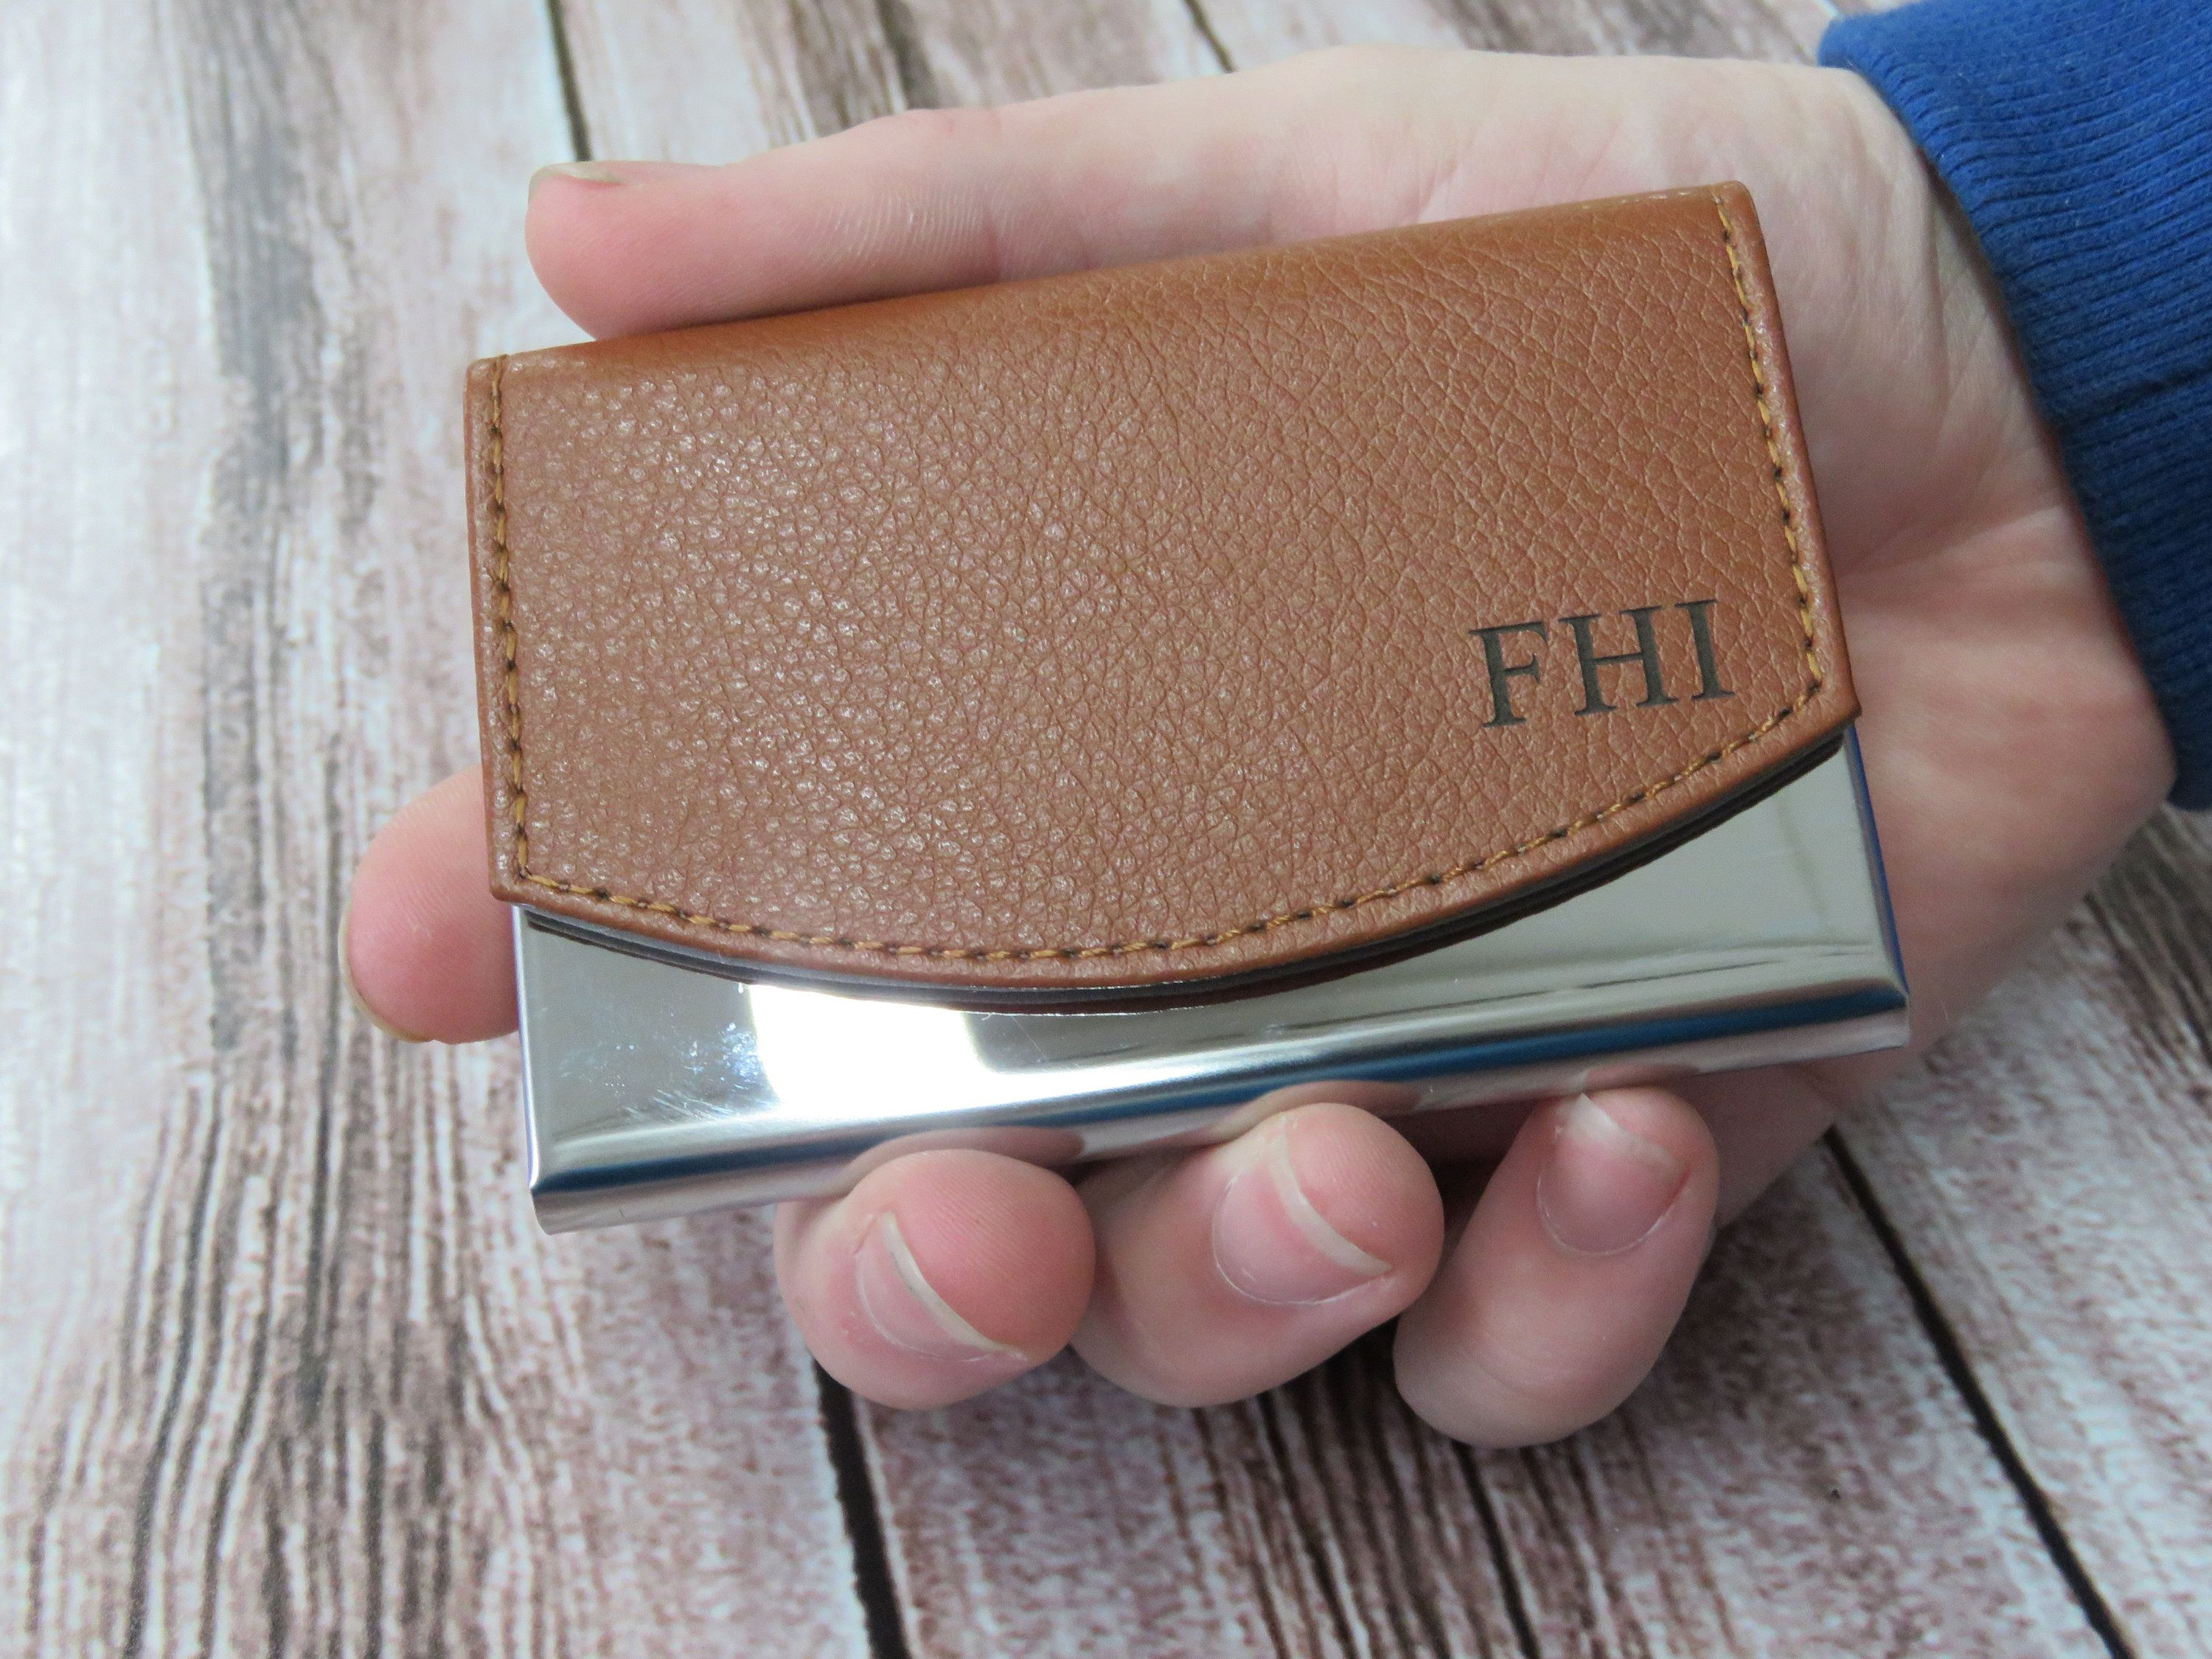 Custom Engraved Leather Business Card Holder Personalized Card Case Corporate Gifts Boss Gi Corporate Gifts Client Appreciation Gifts Leather Business Cards